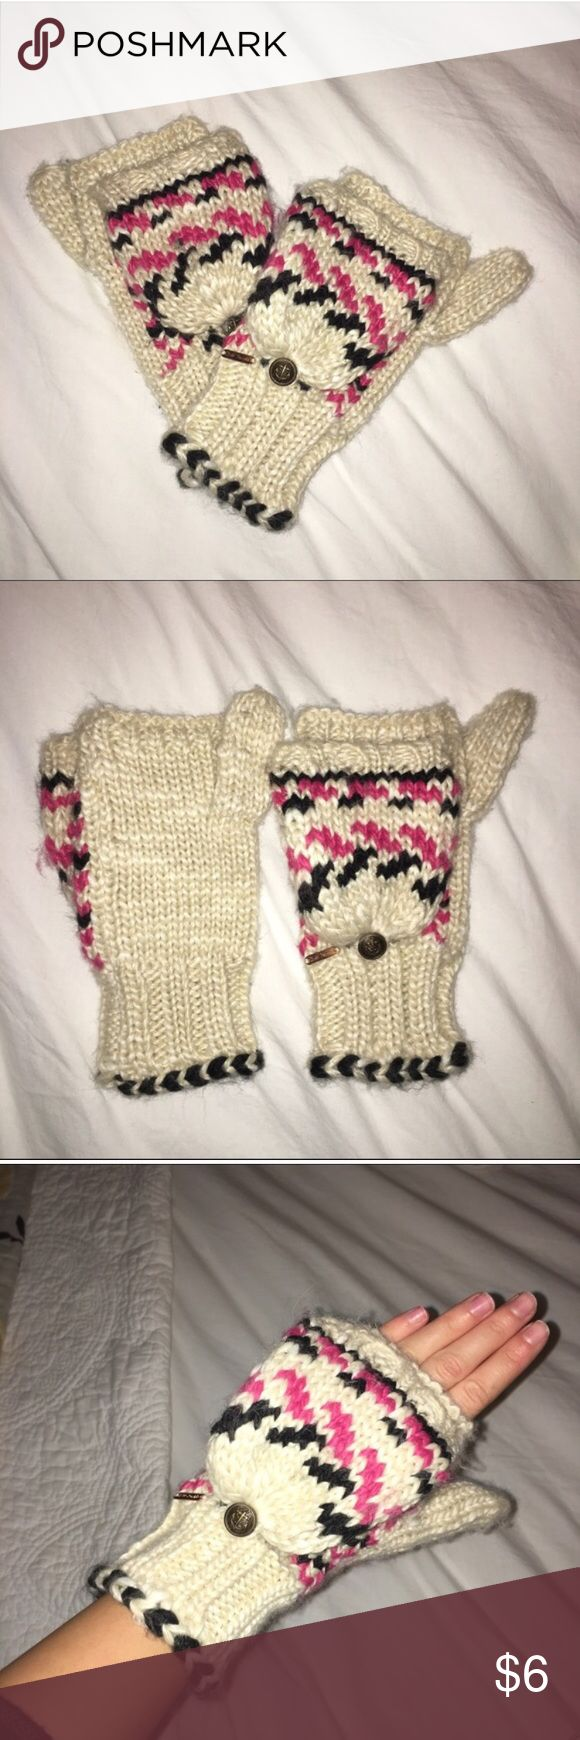 Free People mittens Free People cream mitten with pop-top option with small button closure featuring an anchor. Pink and black stitching. Only worn twice! Free People Accessories Gloves & Mittens